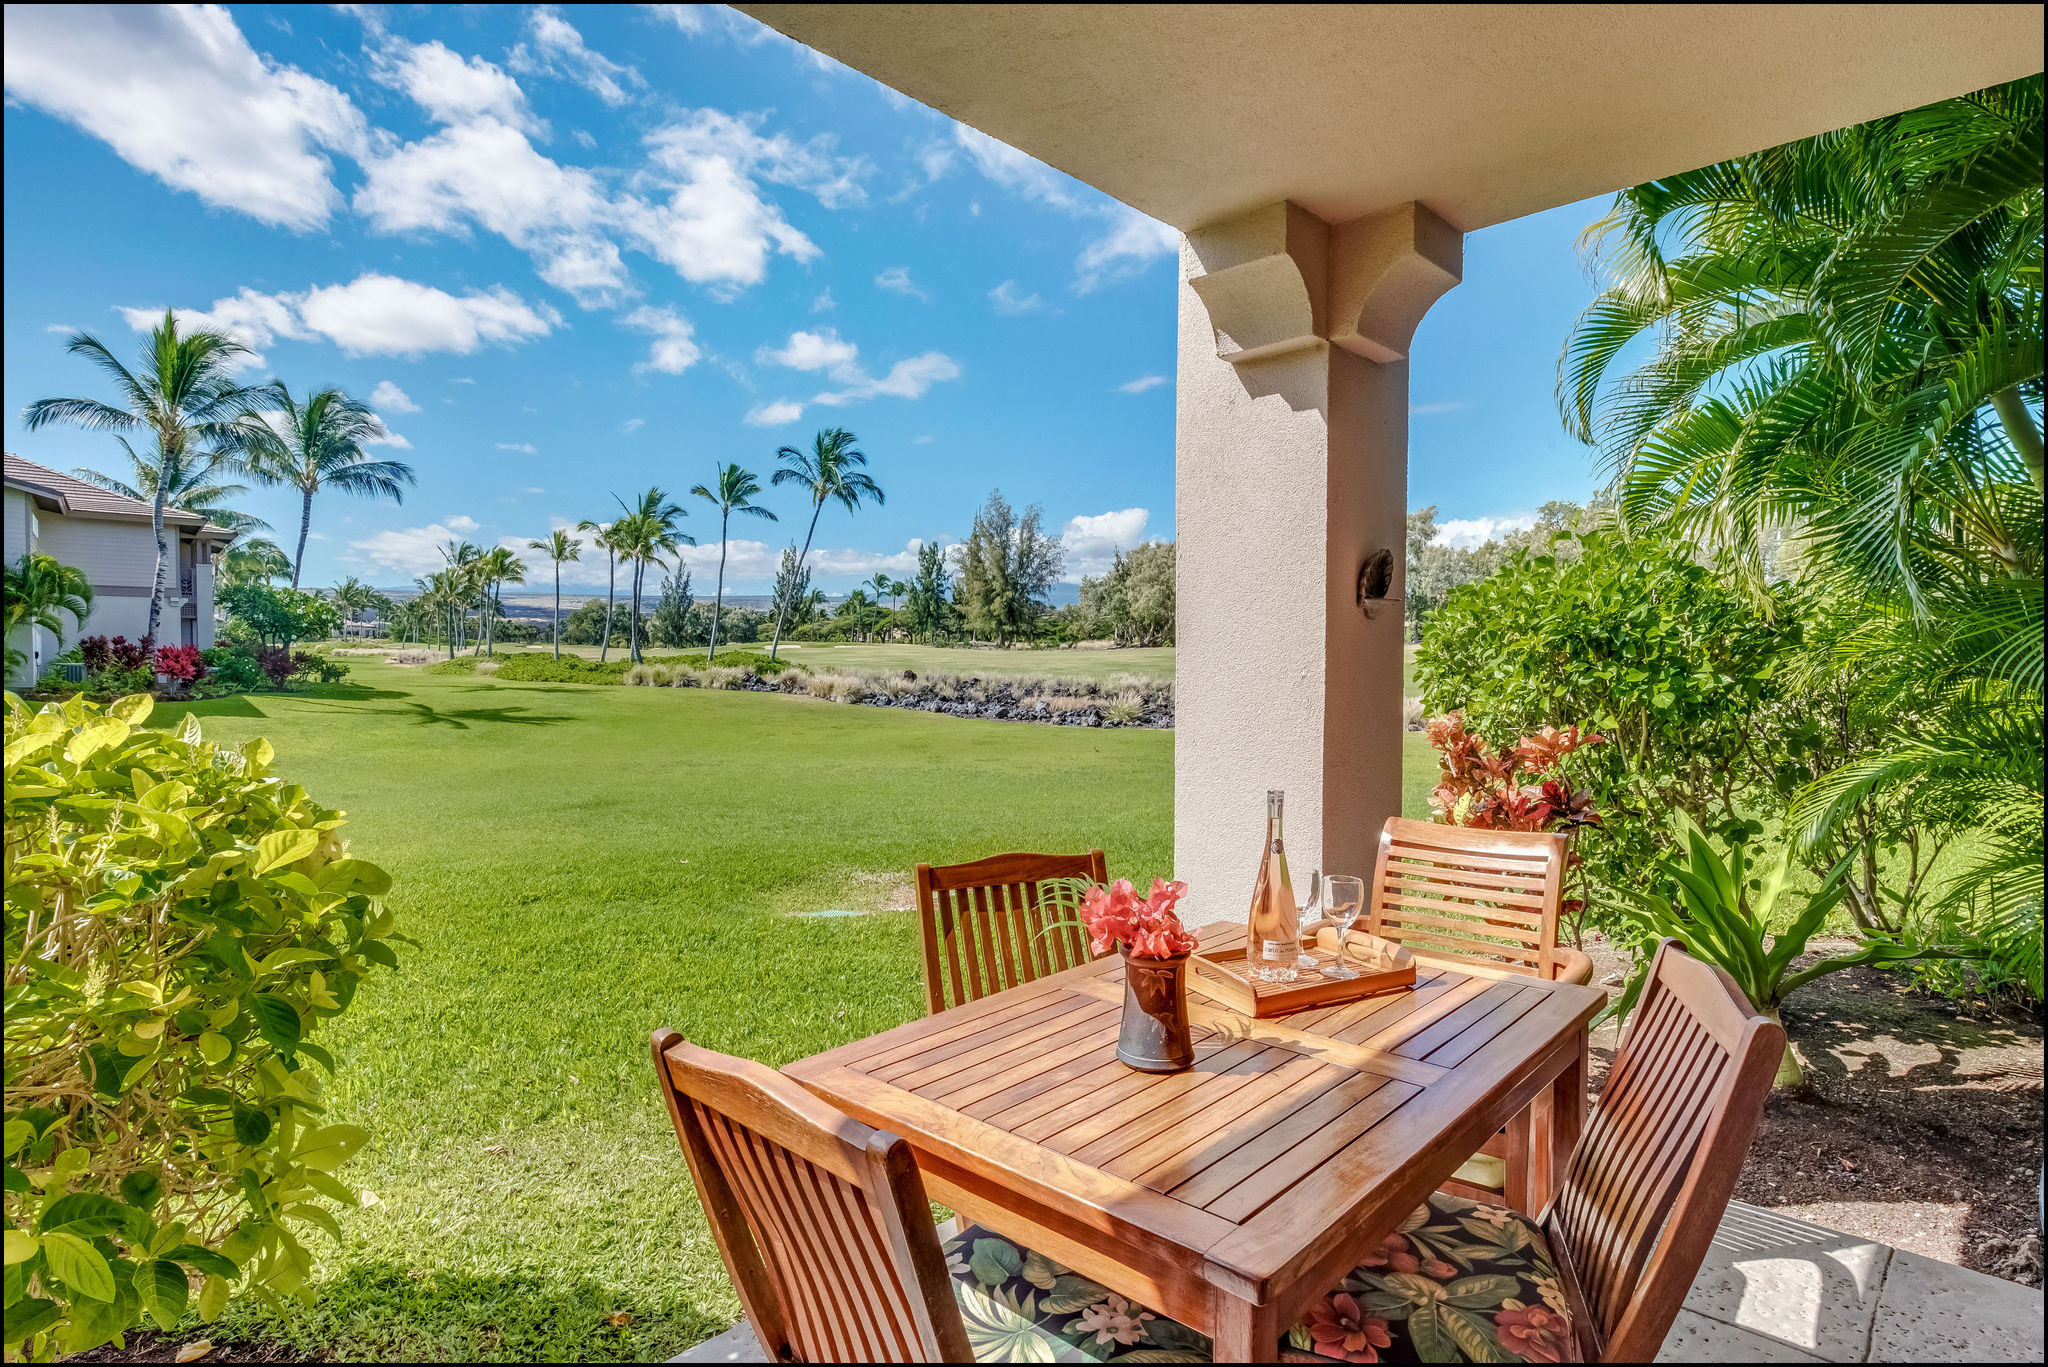 Lanai with one step down to luxurious lawn and landscaping including palms, fragrant flowering trees, and red ginger